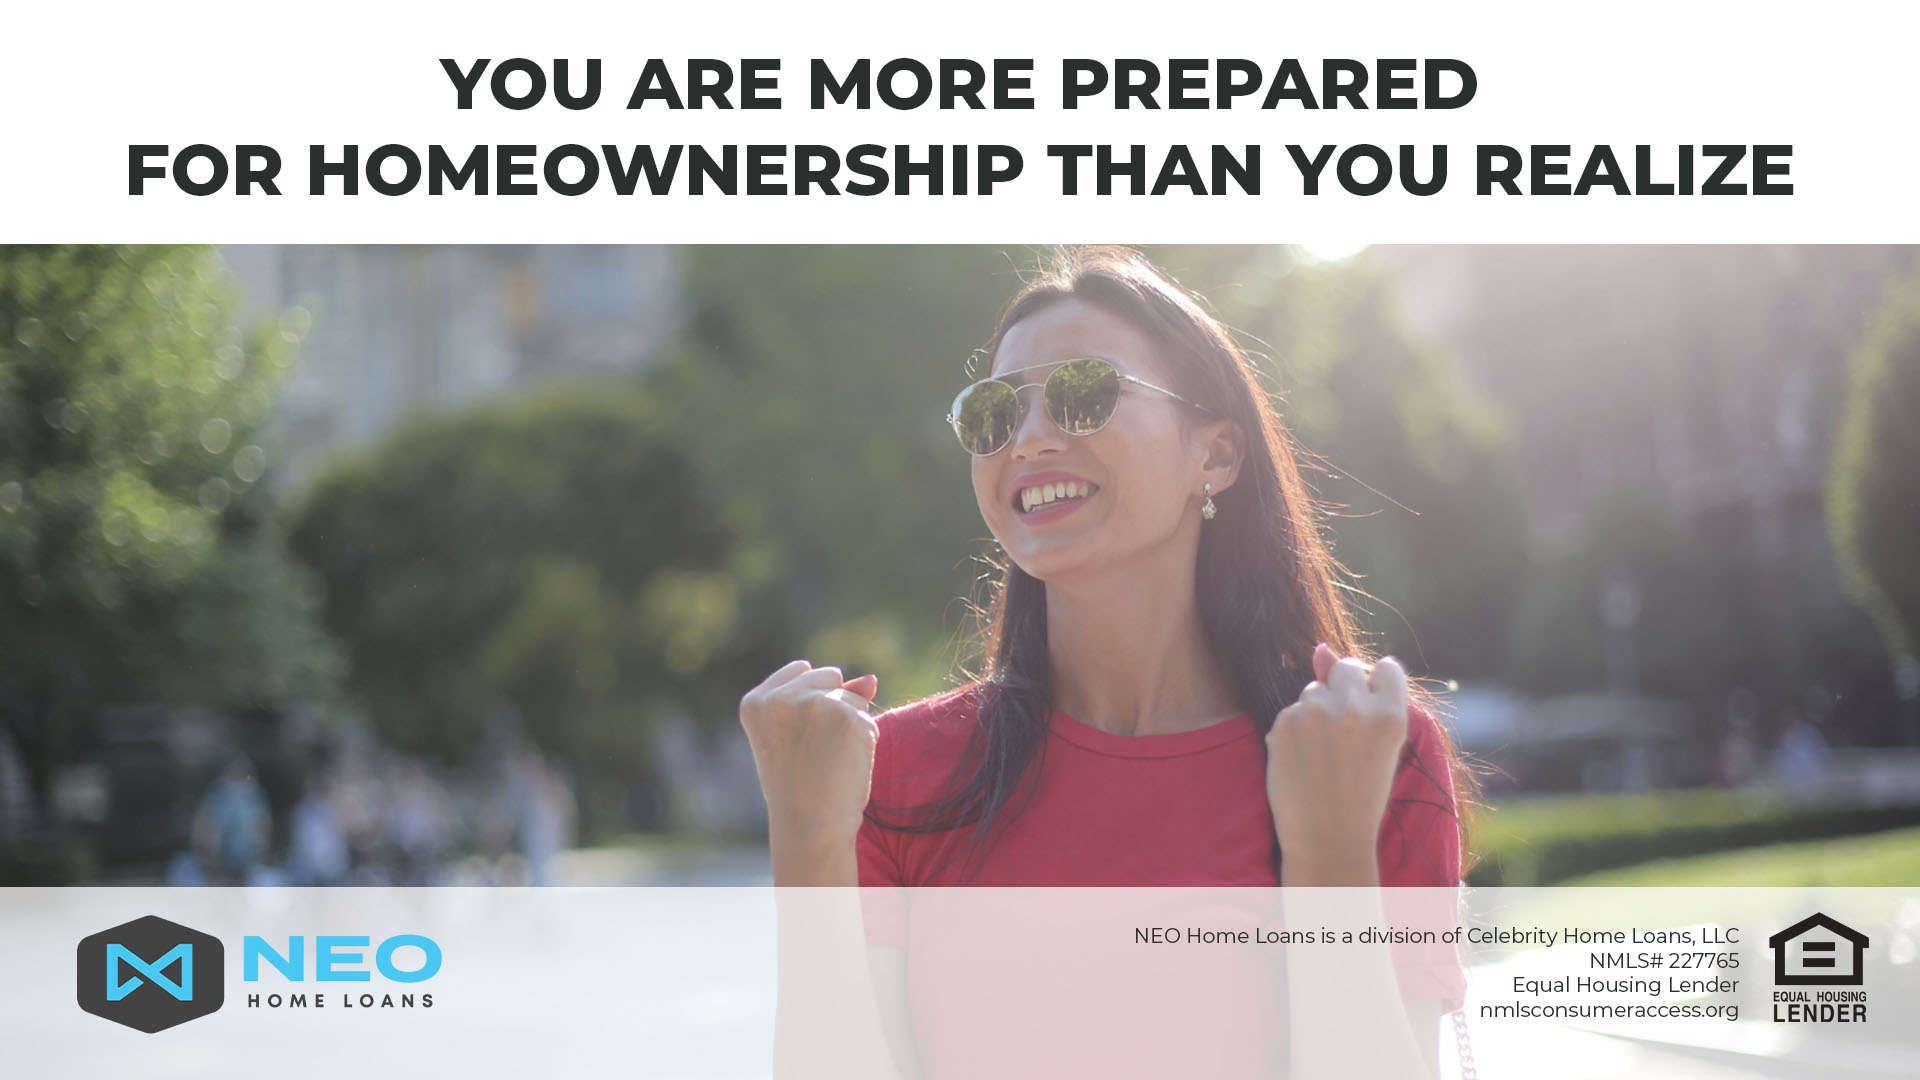 You Are More Prepared for Homeownership Than You Realize